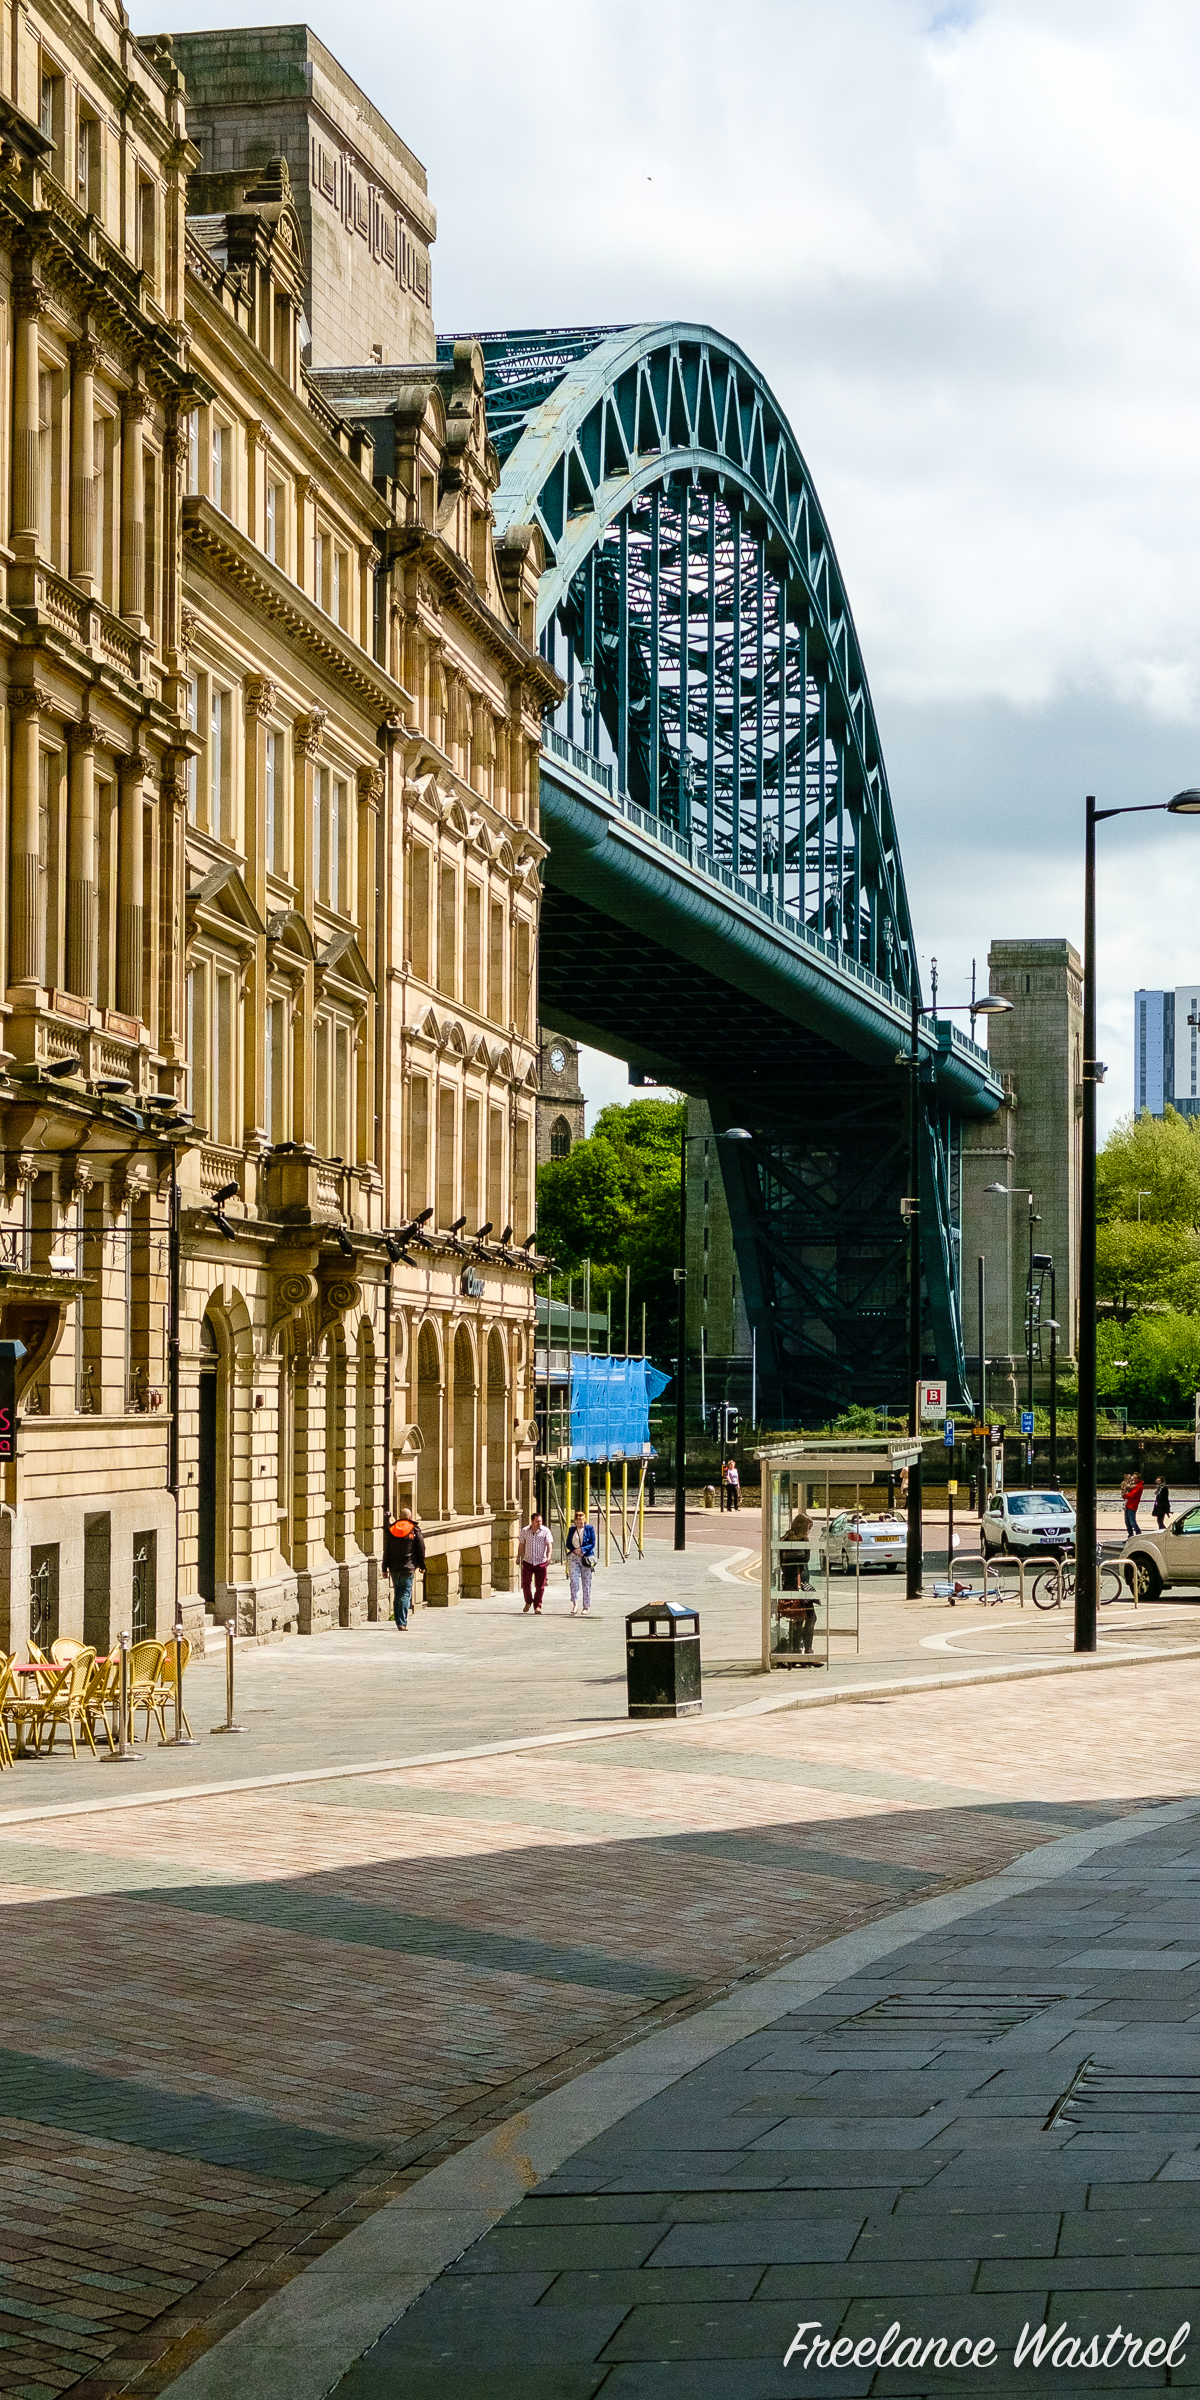 Tyne Bridge, June 2015